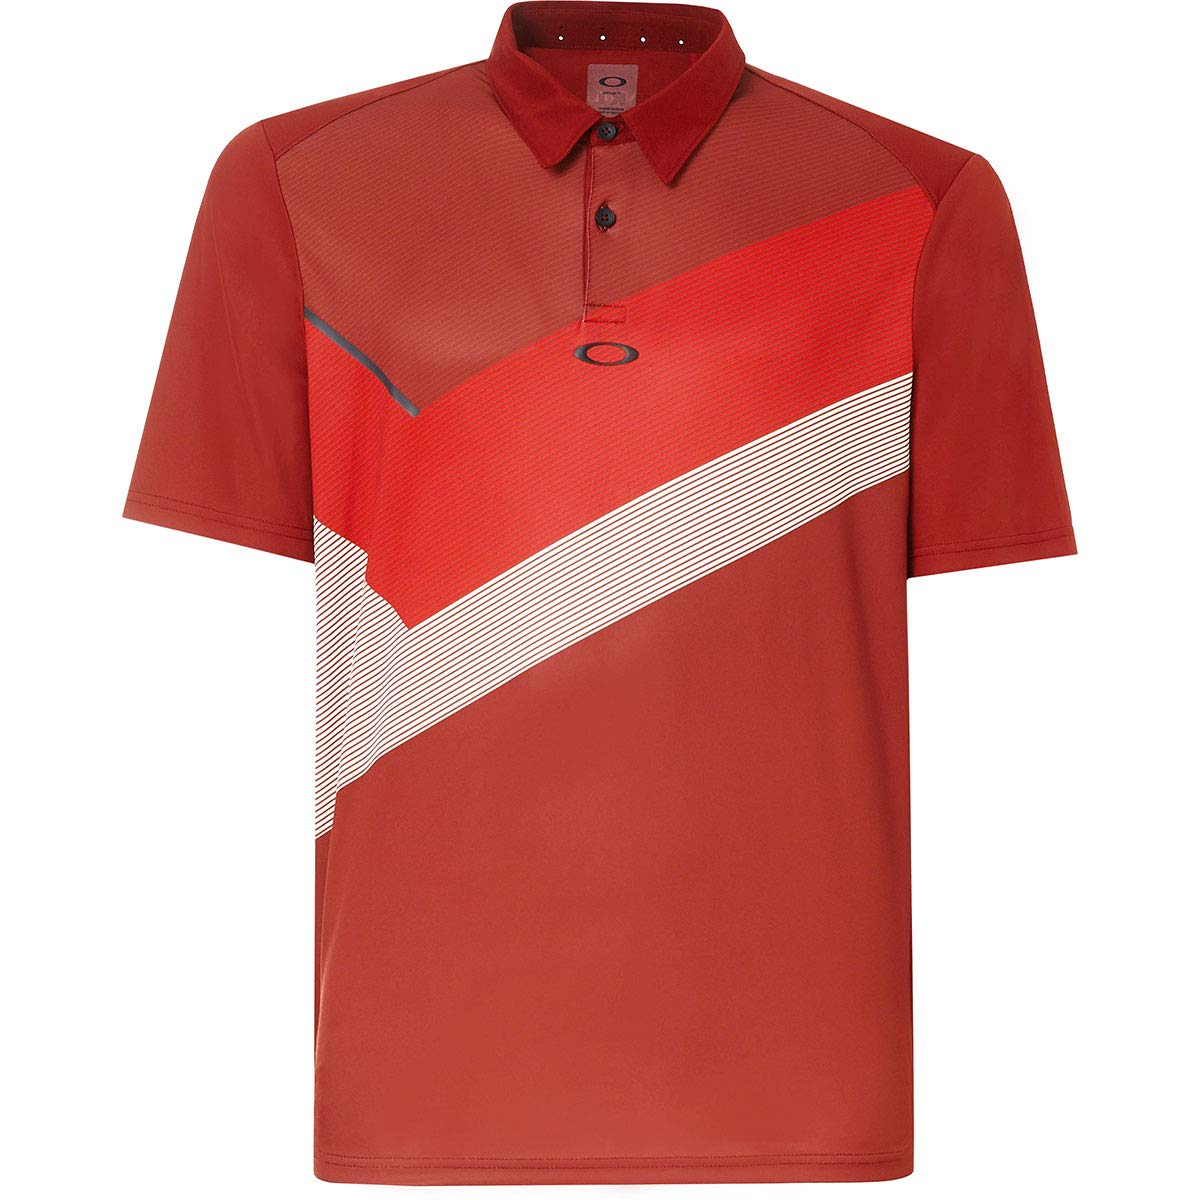 Oakley Mens Polo Shirt Ss Placed Collar Block, Iron Red, XXL ...